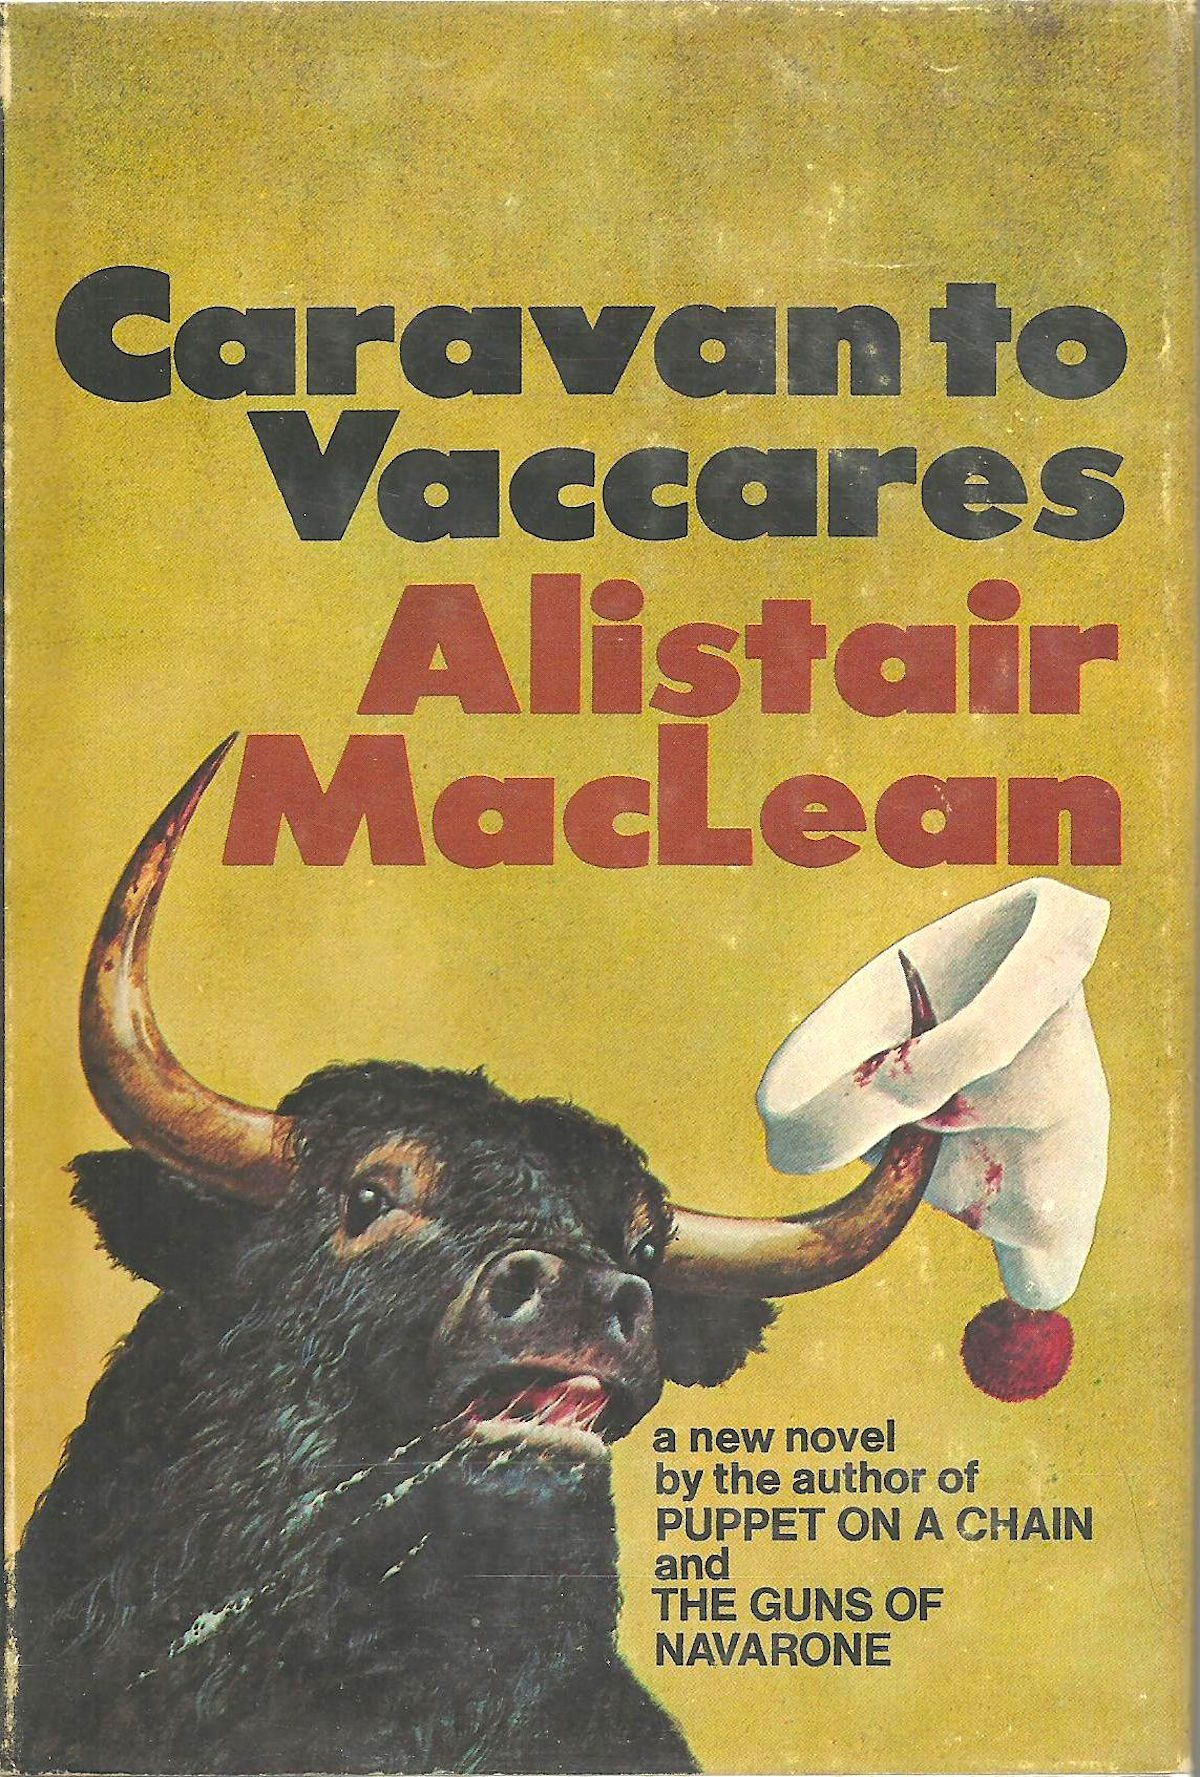 Alistair MacLean, Caravan to Vaccares, book